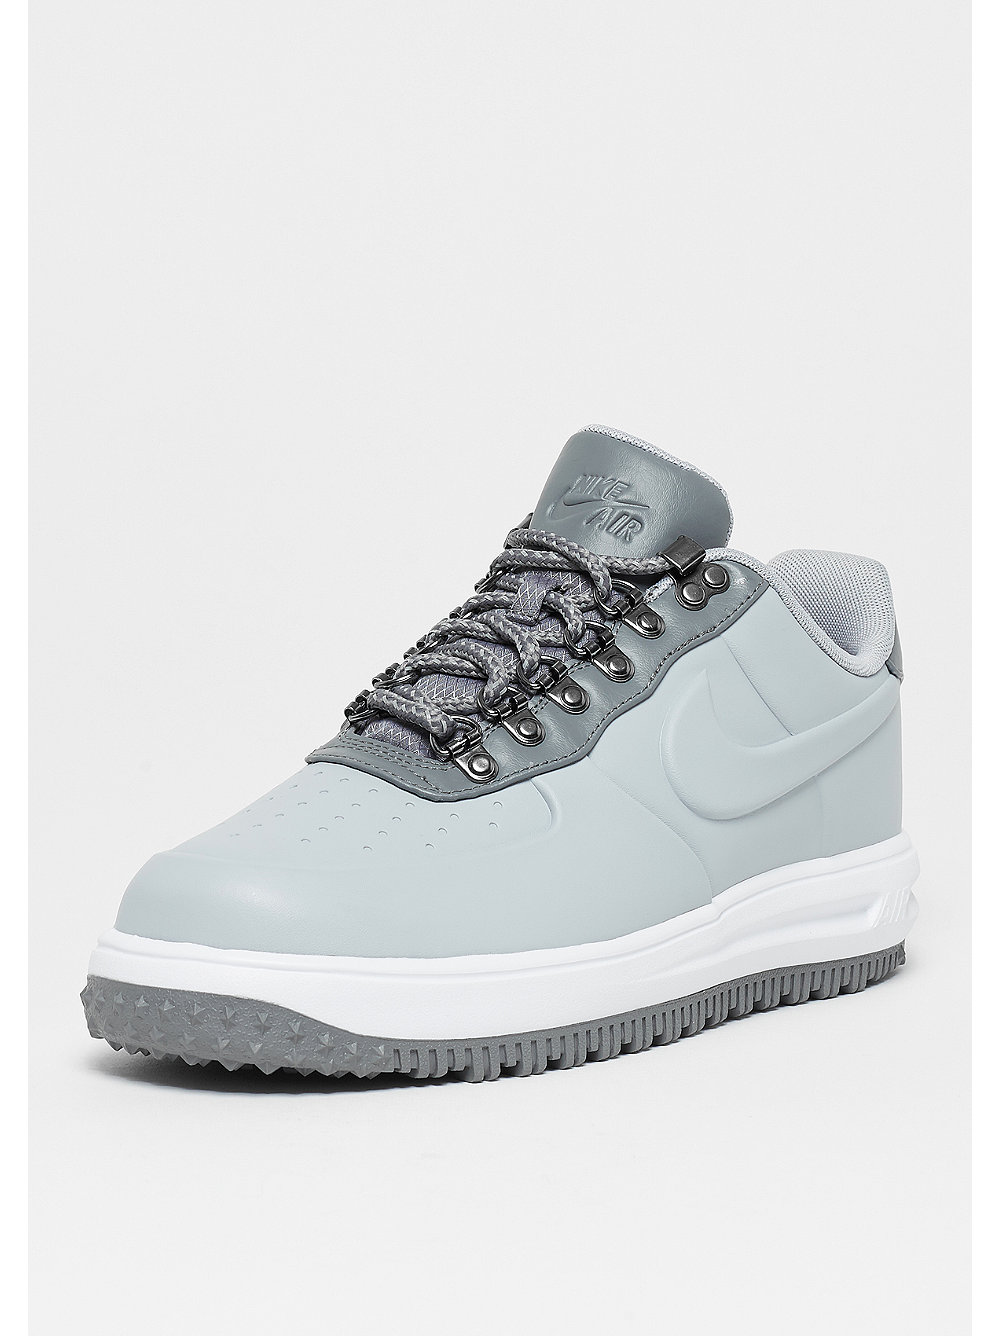 low priced 99344 e374b ... purchase nike lunar force 1 low duckboot wolf grey wolf grey 55d26 89f7f